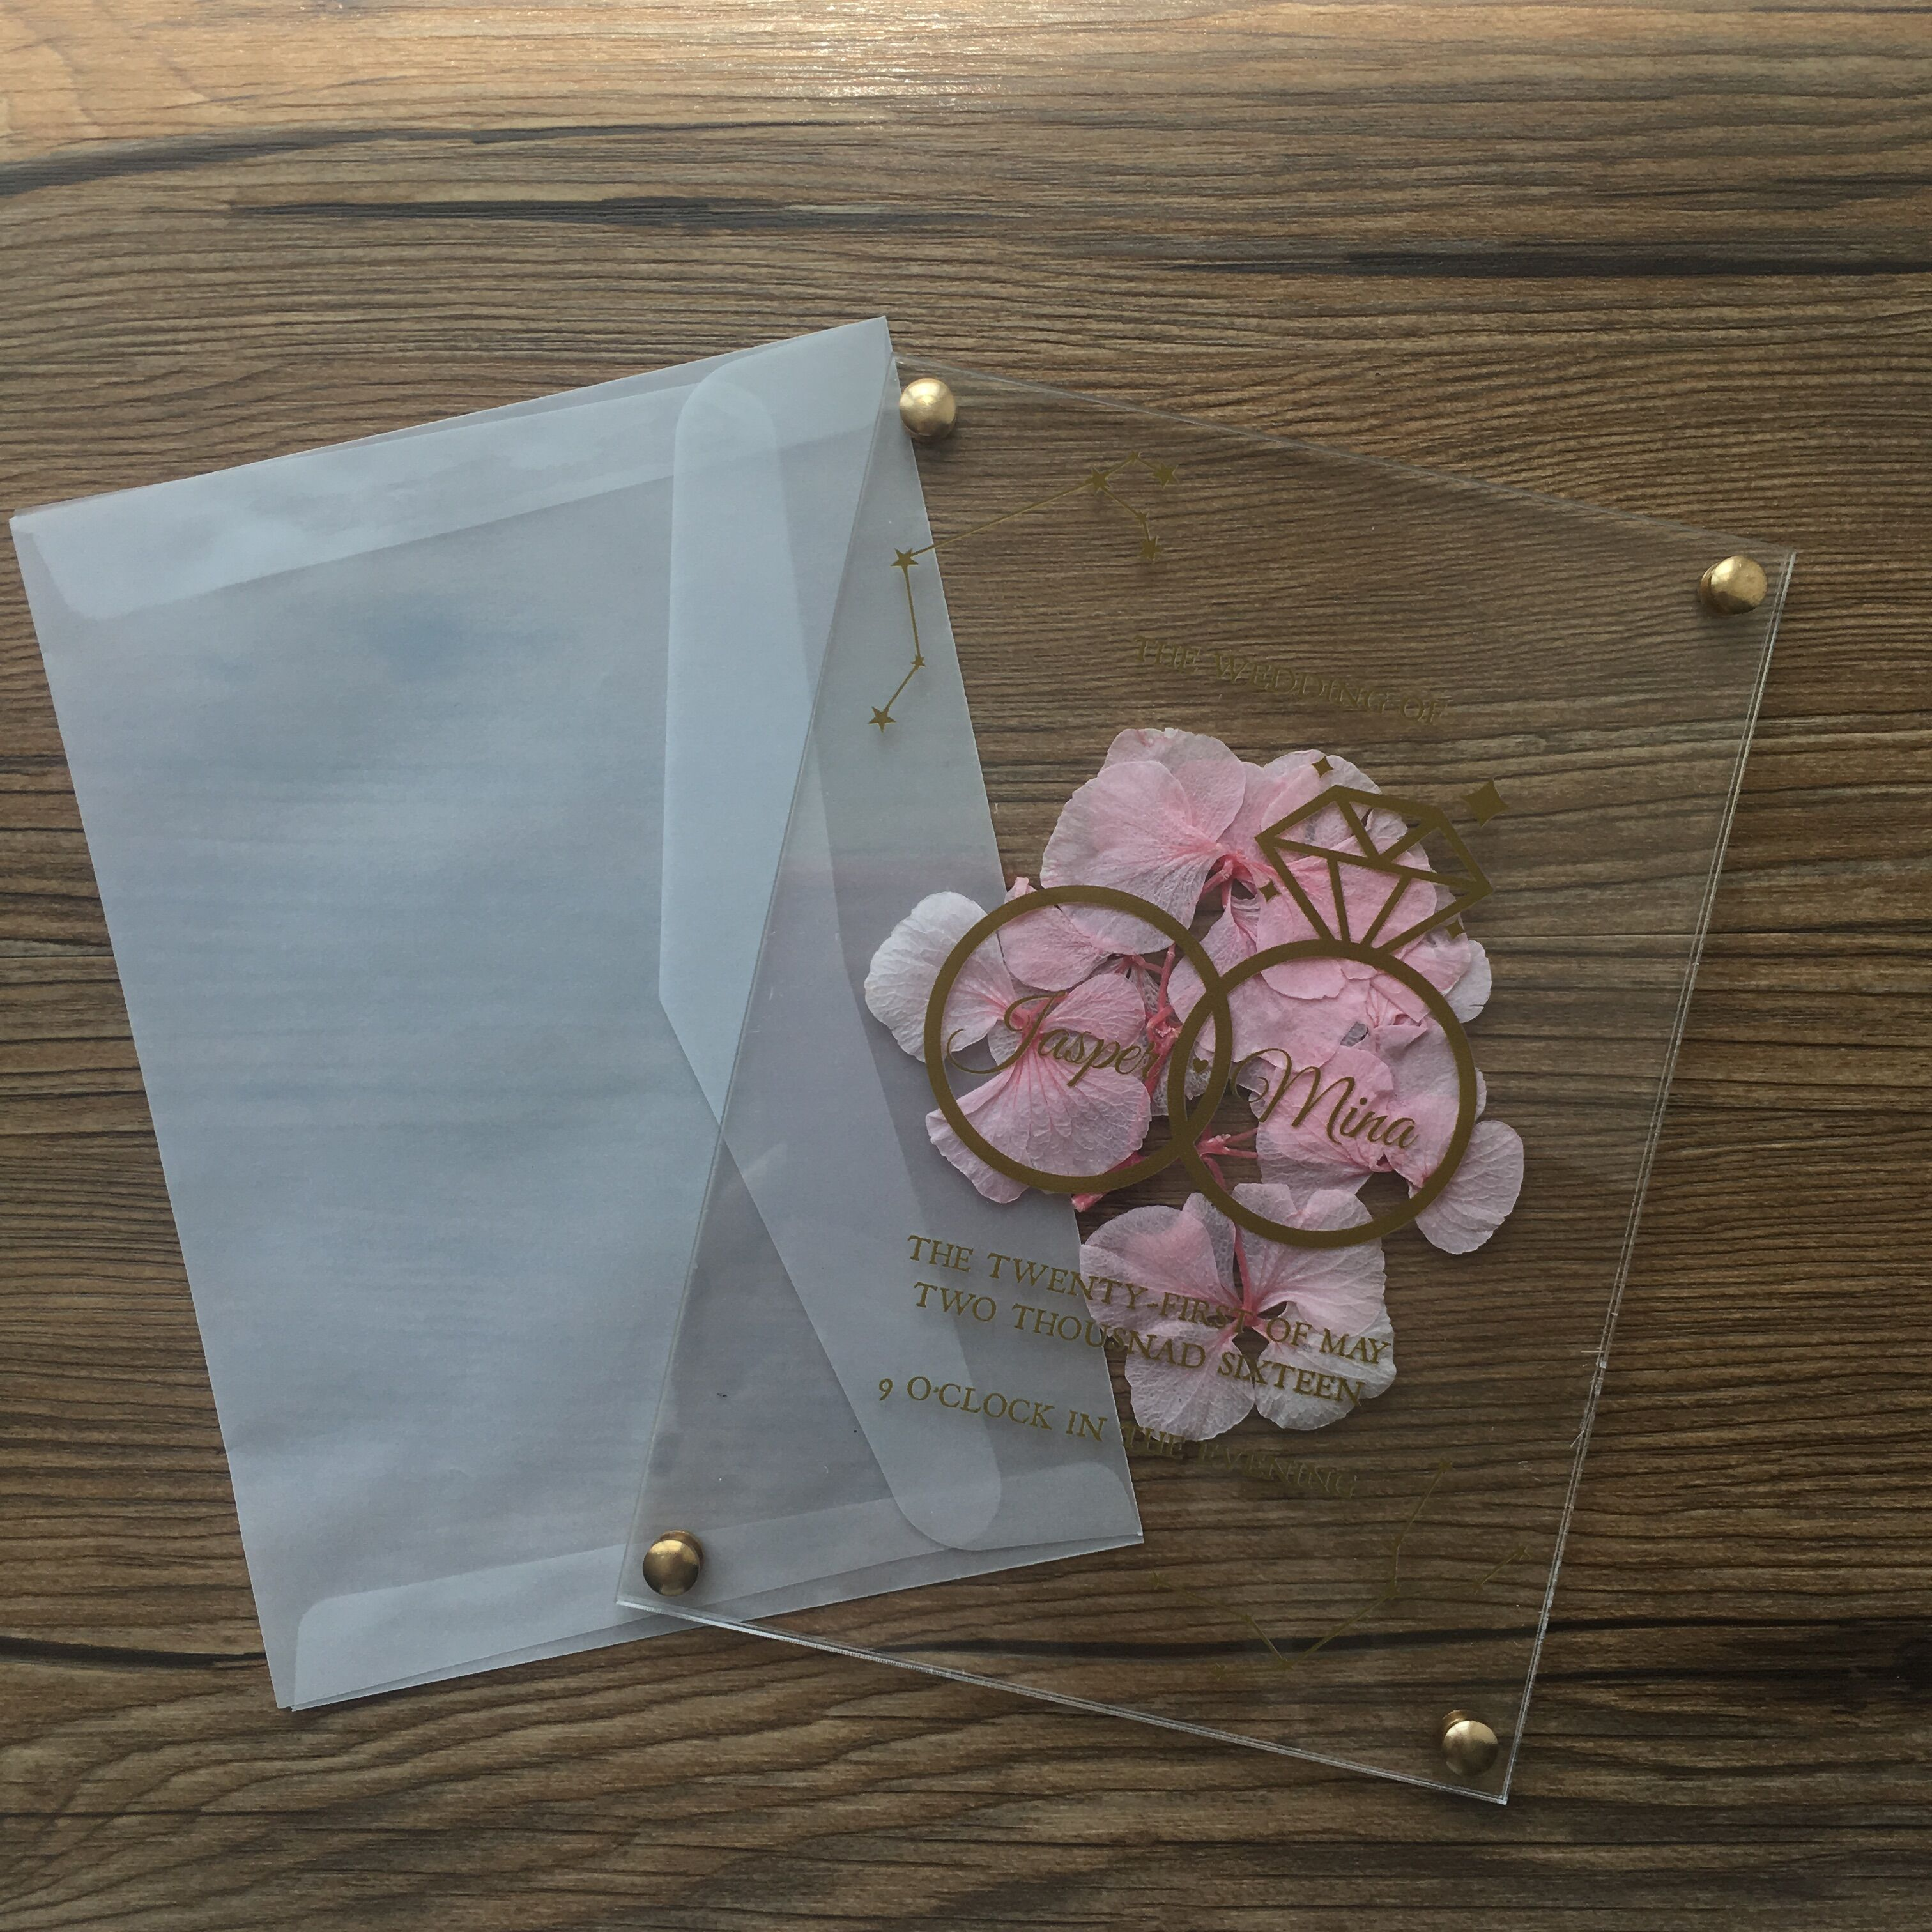 10pcs Newest Double Acrylic Wedding Invitation Card With Flower Inside For Wedding And Birthday Decoration